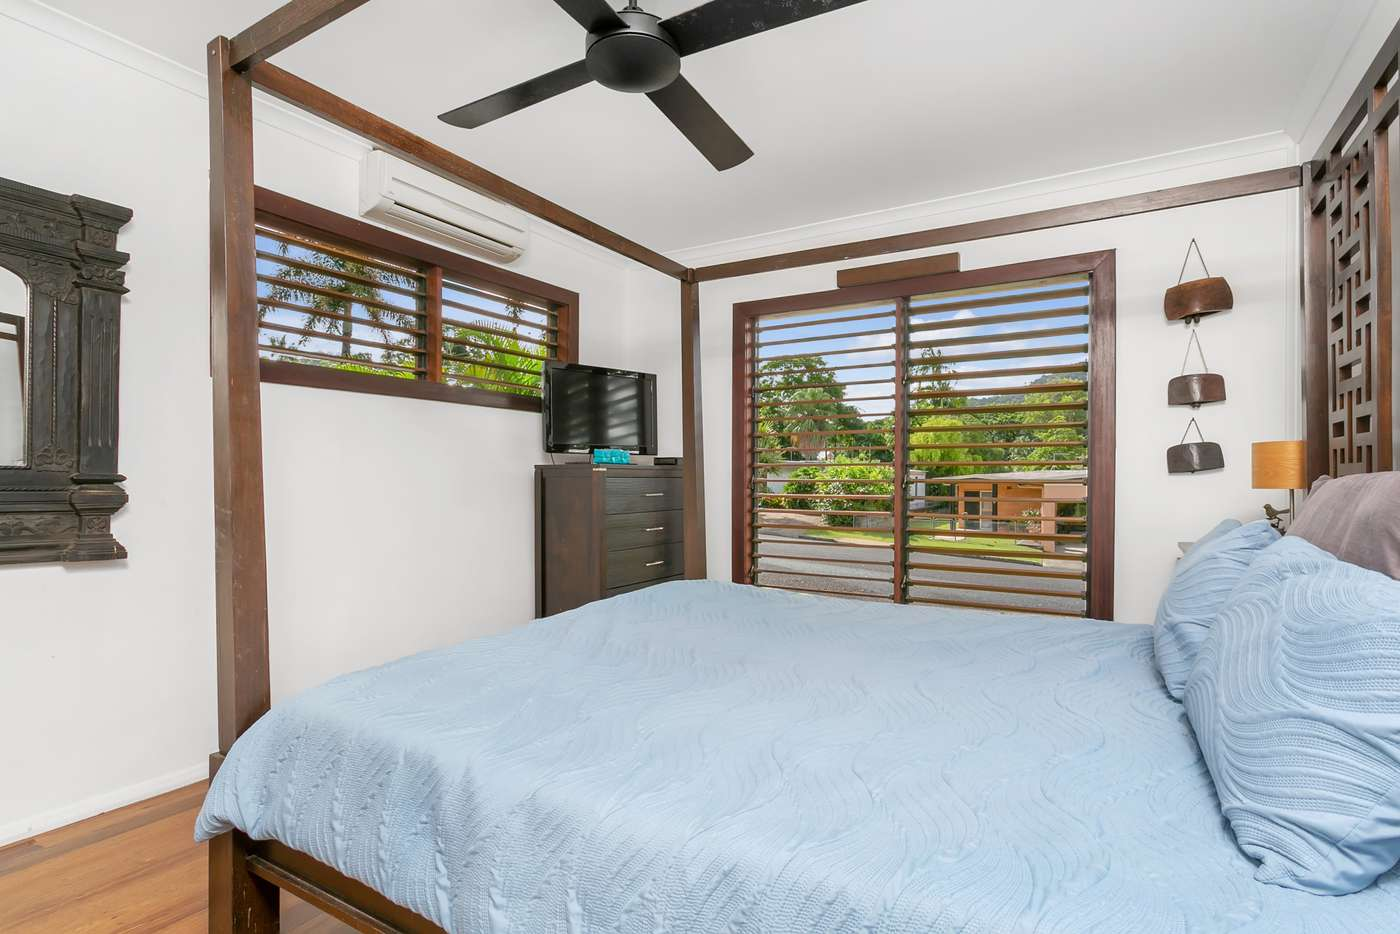 Sixth view of Homely house listing, 9 Duignan Street, Whitfield QLD 4870